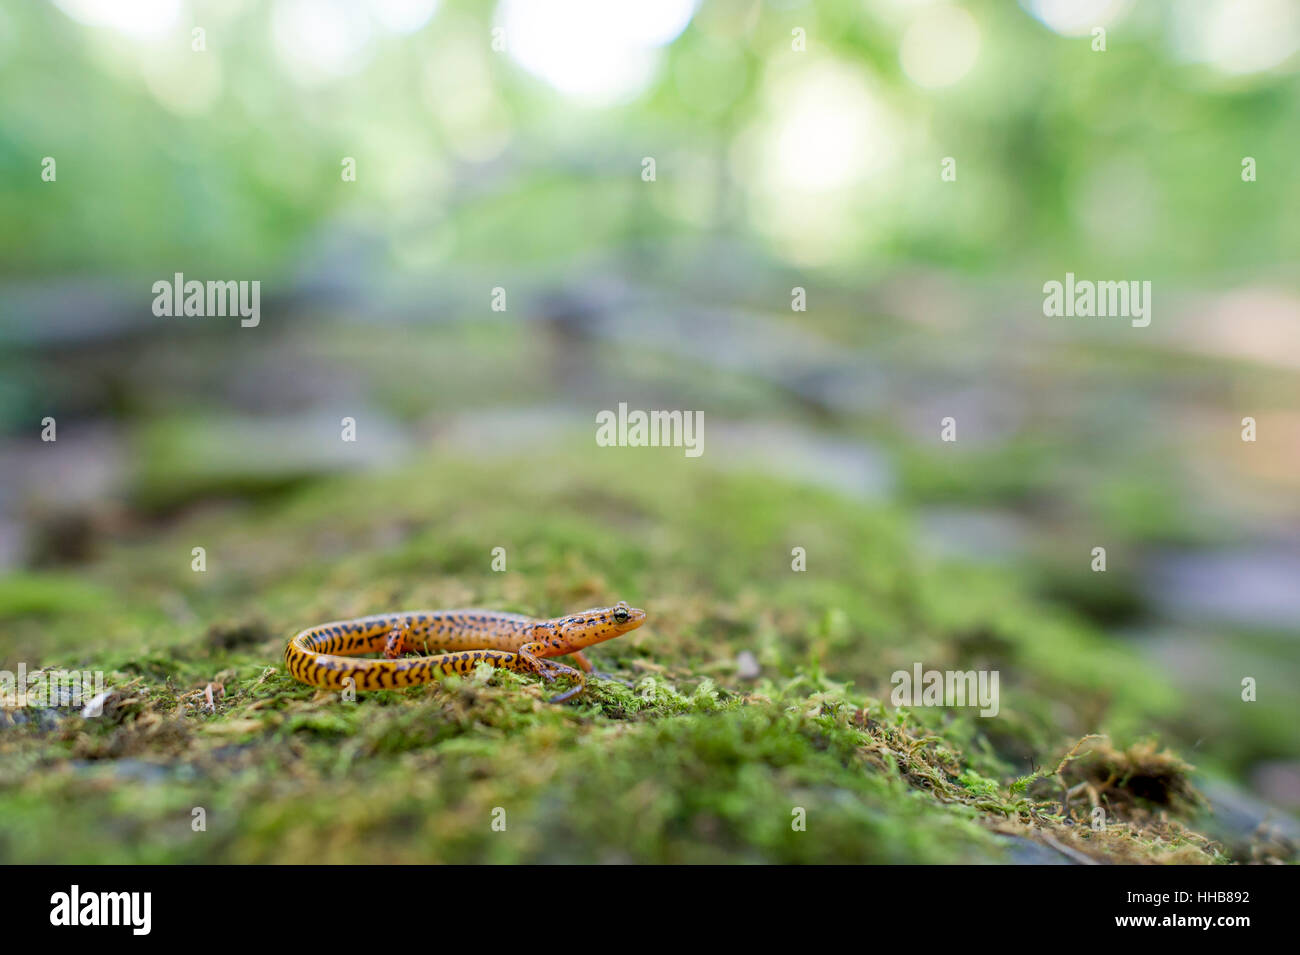 A Long Tailed Salamander sits on a mossy covered log. - Stock Image